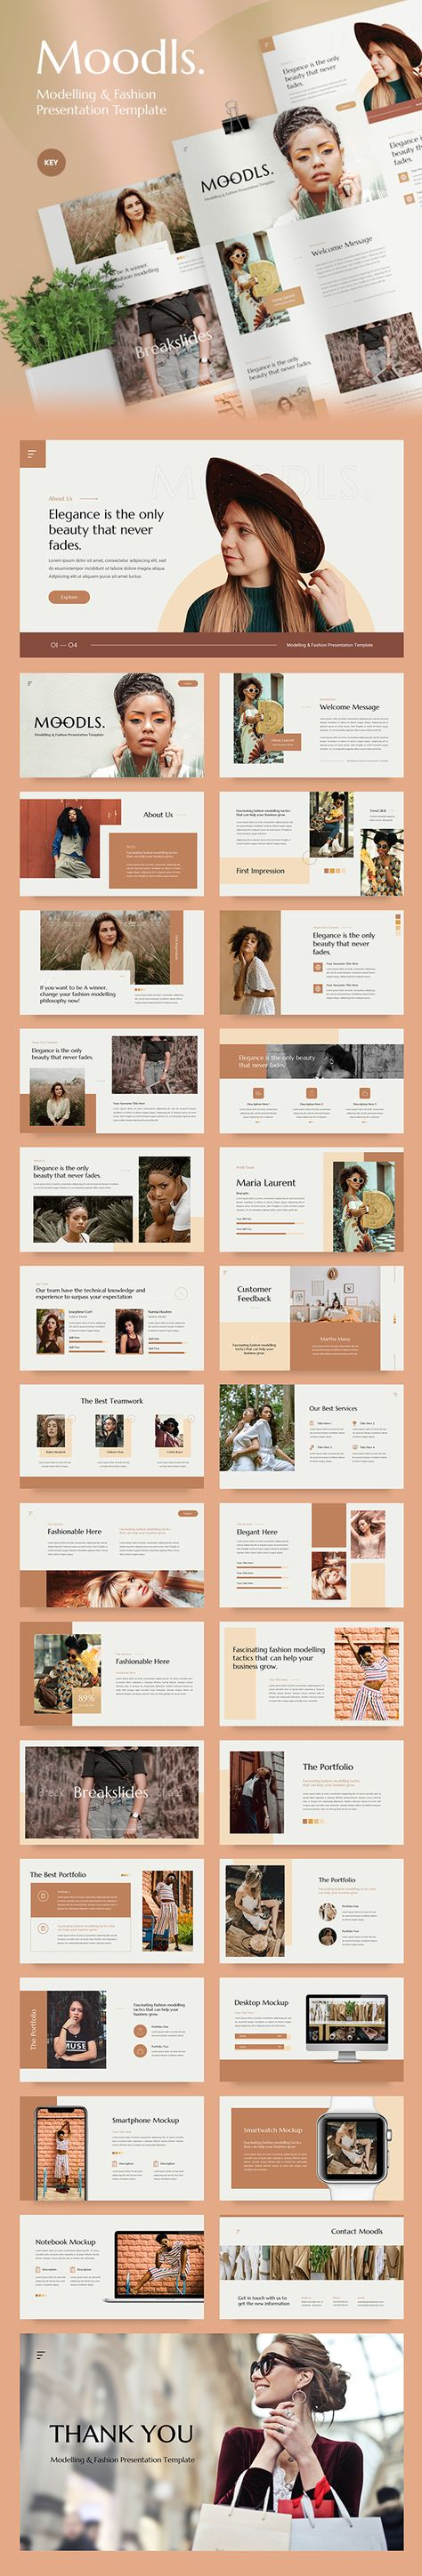 Moodls - Modelling & Fashion Keynote Template